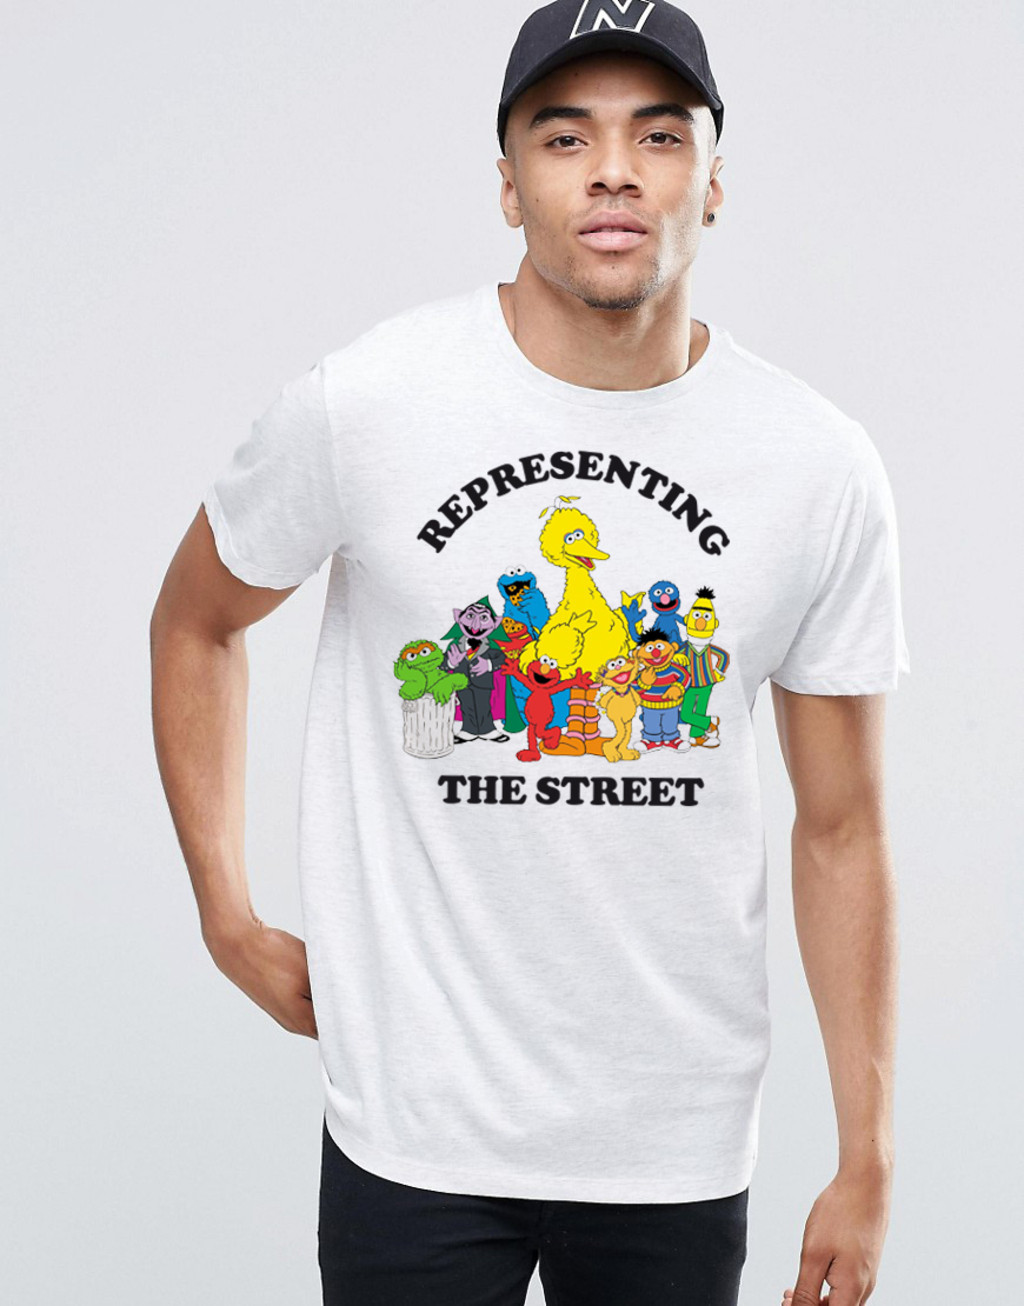 T-shirt REPRESENTING THE STREET